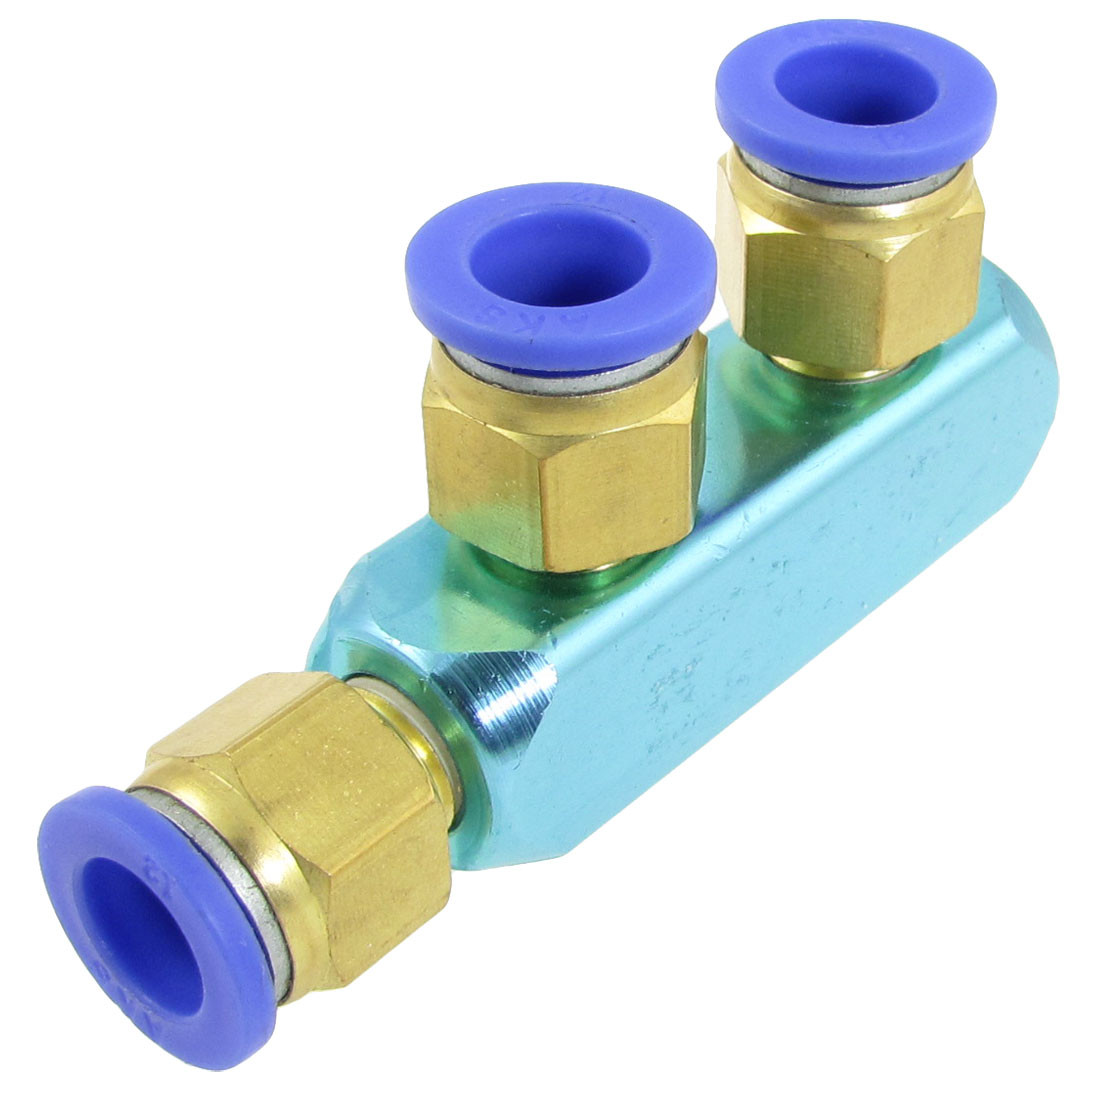 Pneumatic Air Hose Fitting 12mm 3 Way Push in Quick Coupler